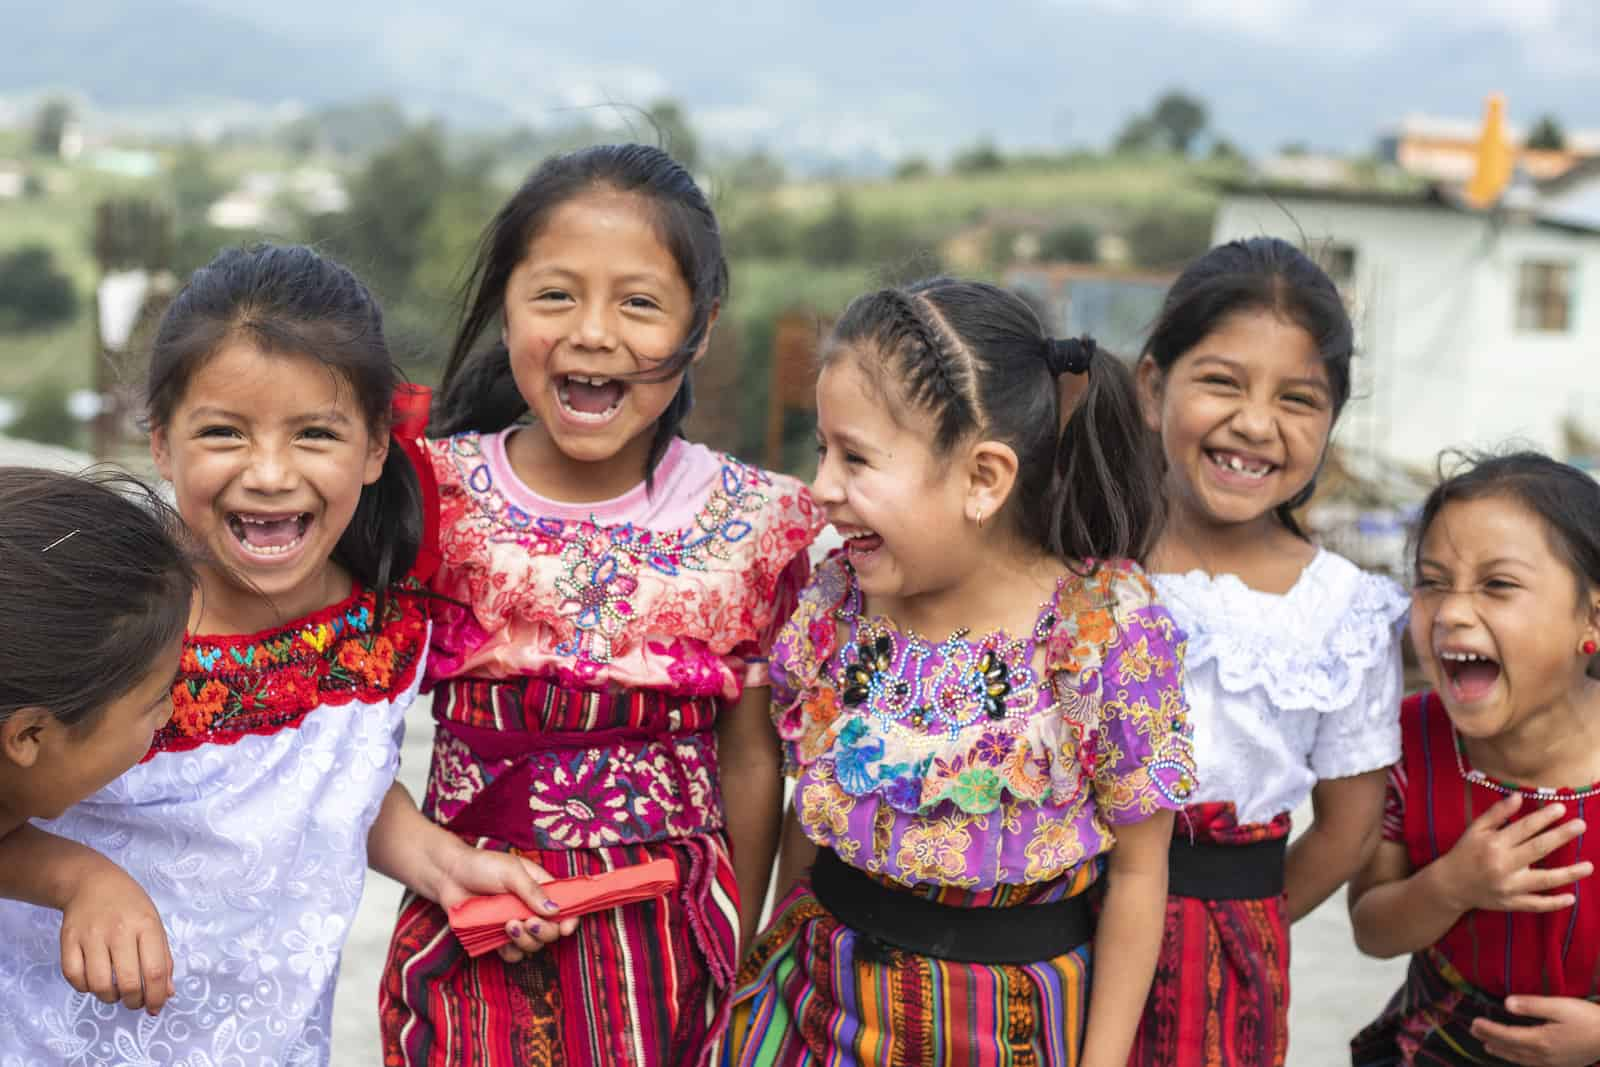 A group of girls in colorful, traditional dress in Guatemala.